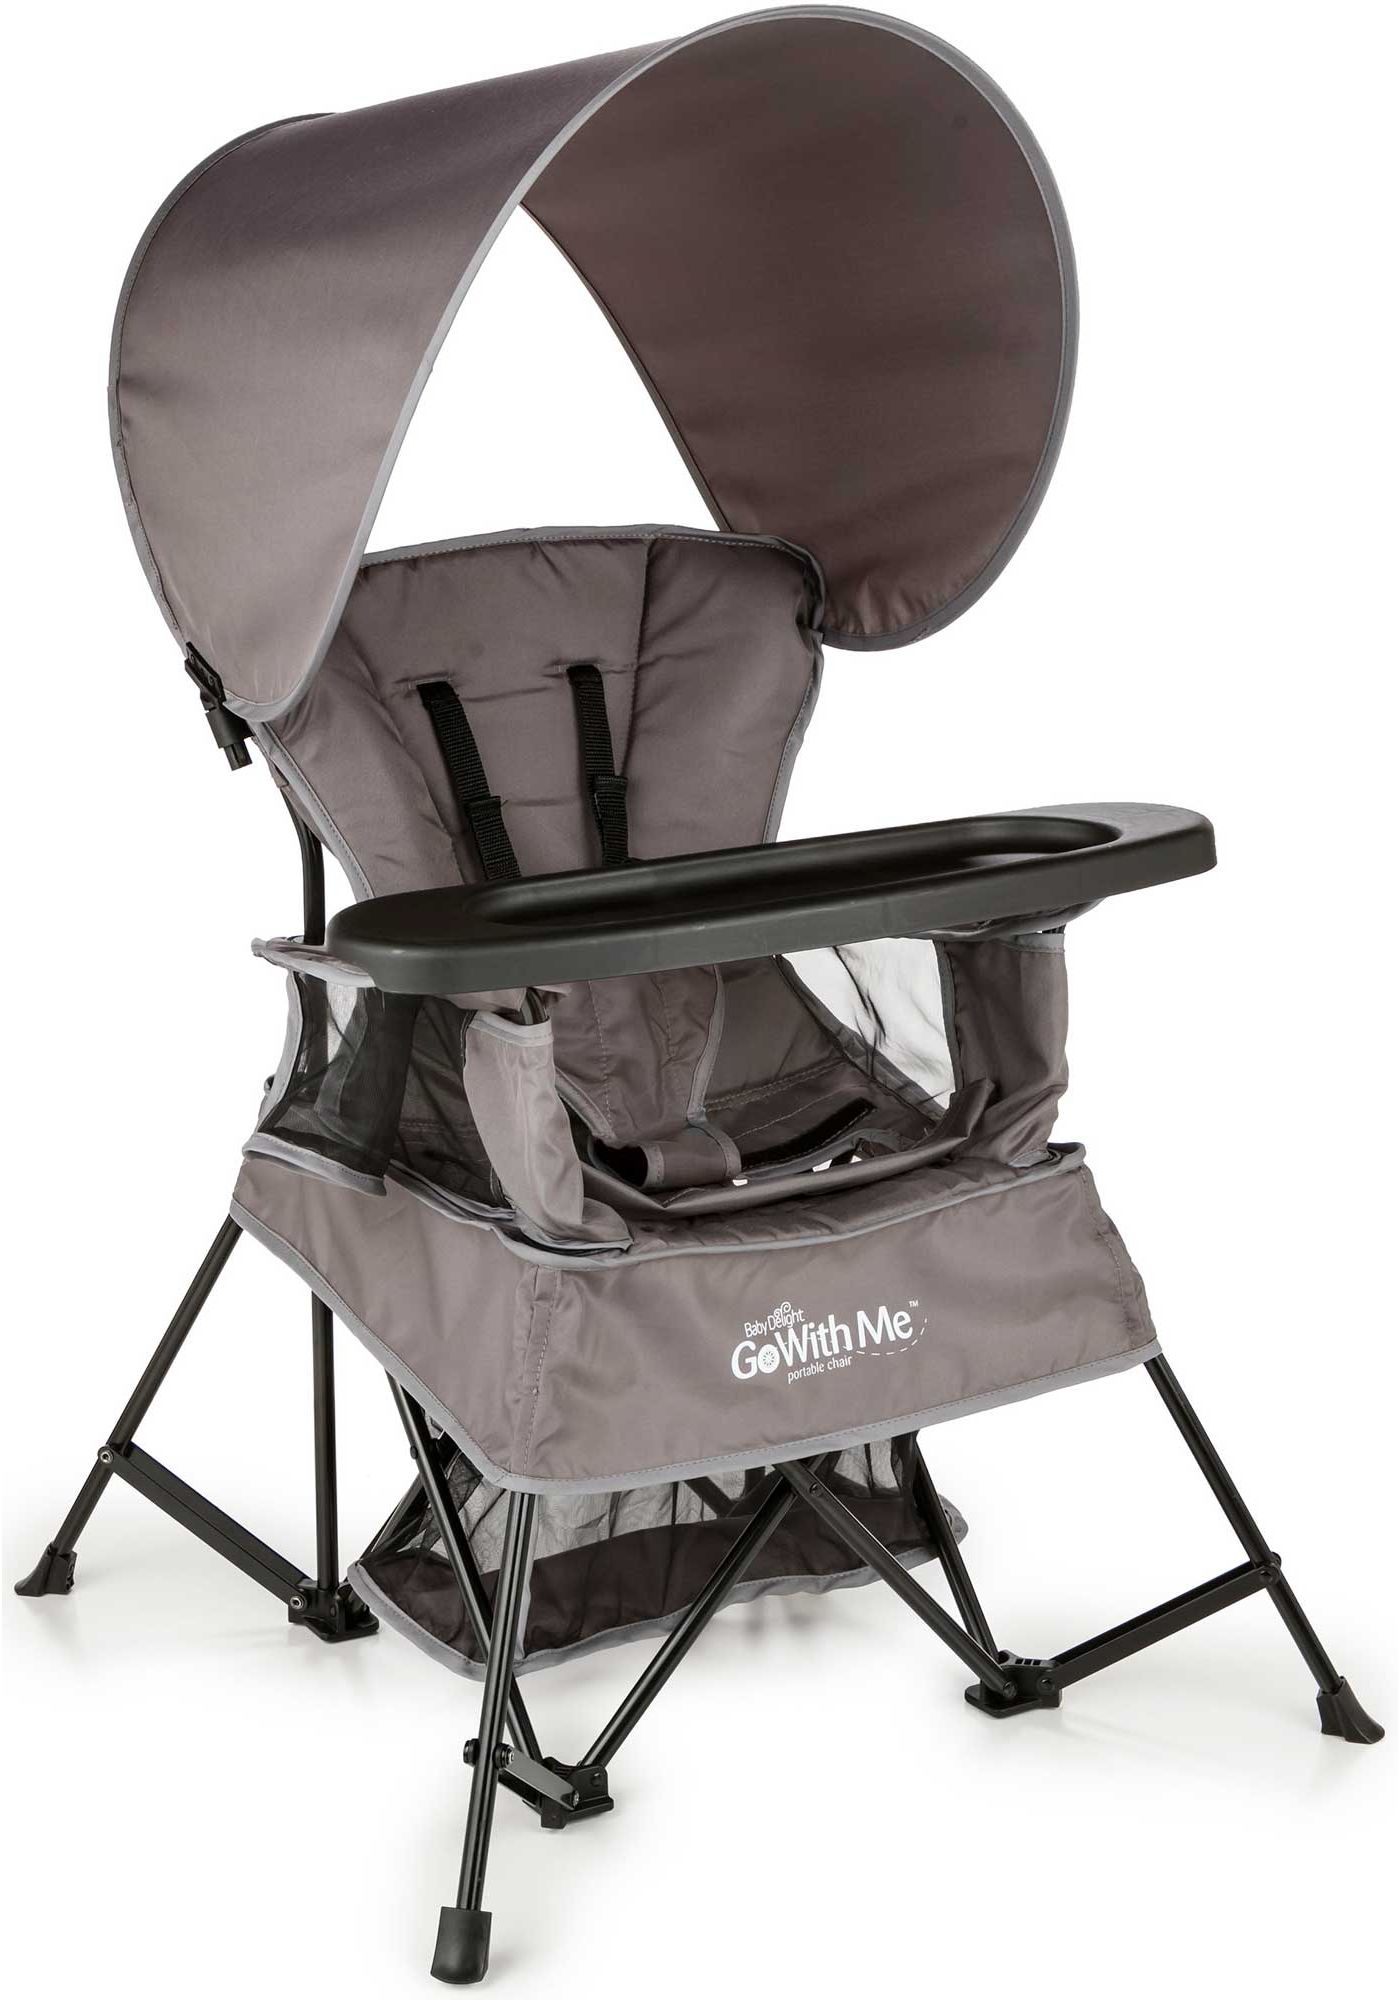 Baby Delight Go With Me Venture Chair